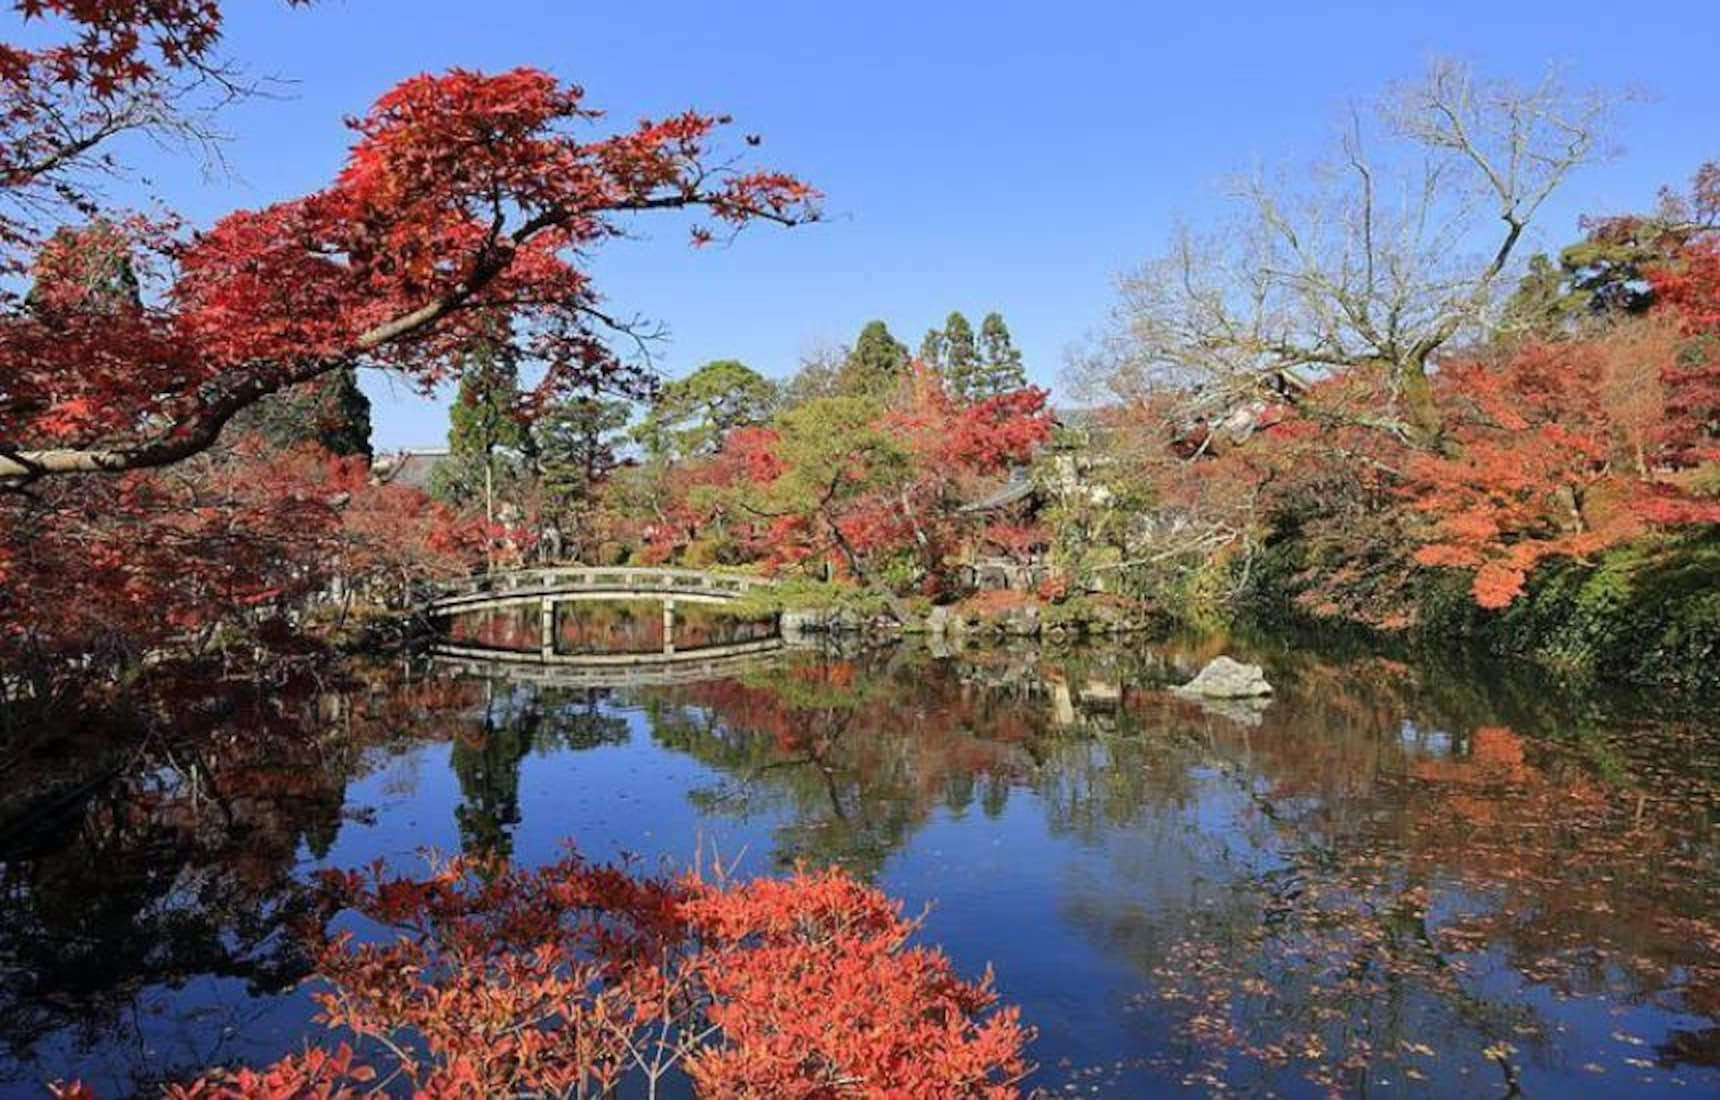 The Best Autumn Leaves Spot in Kyoto